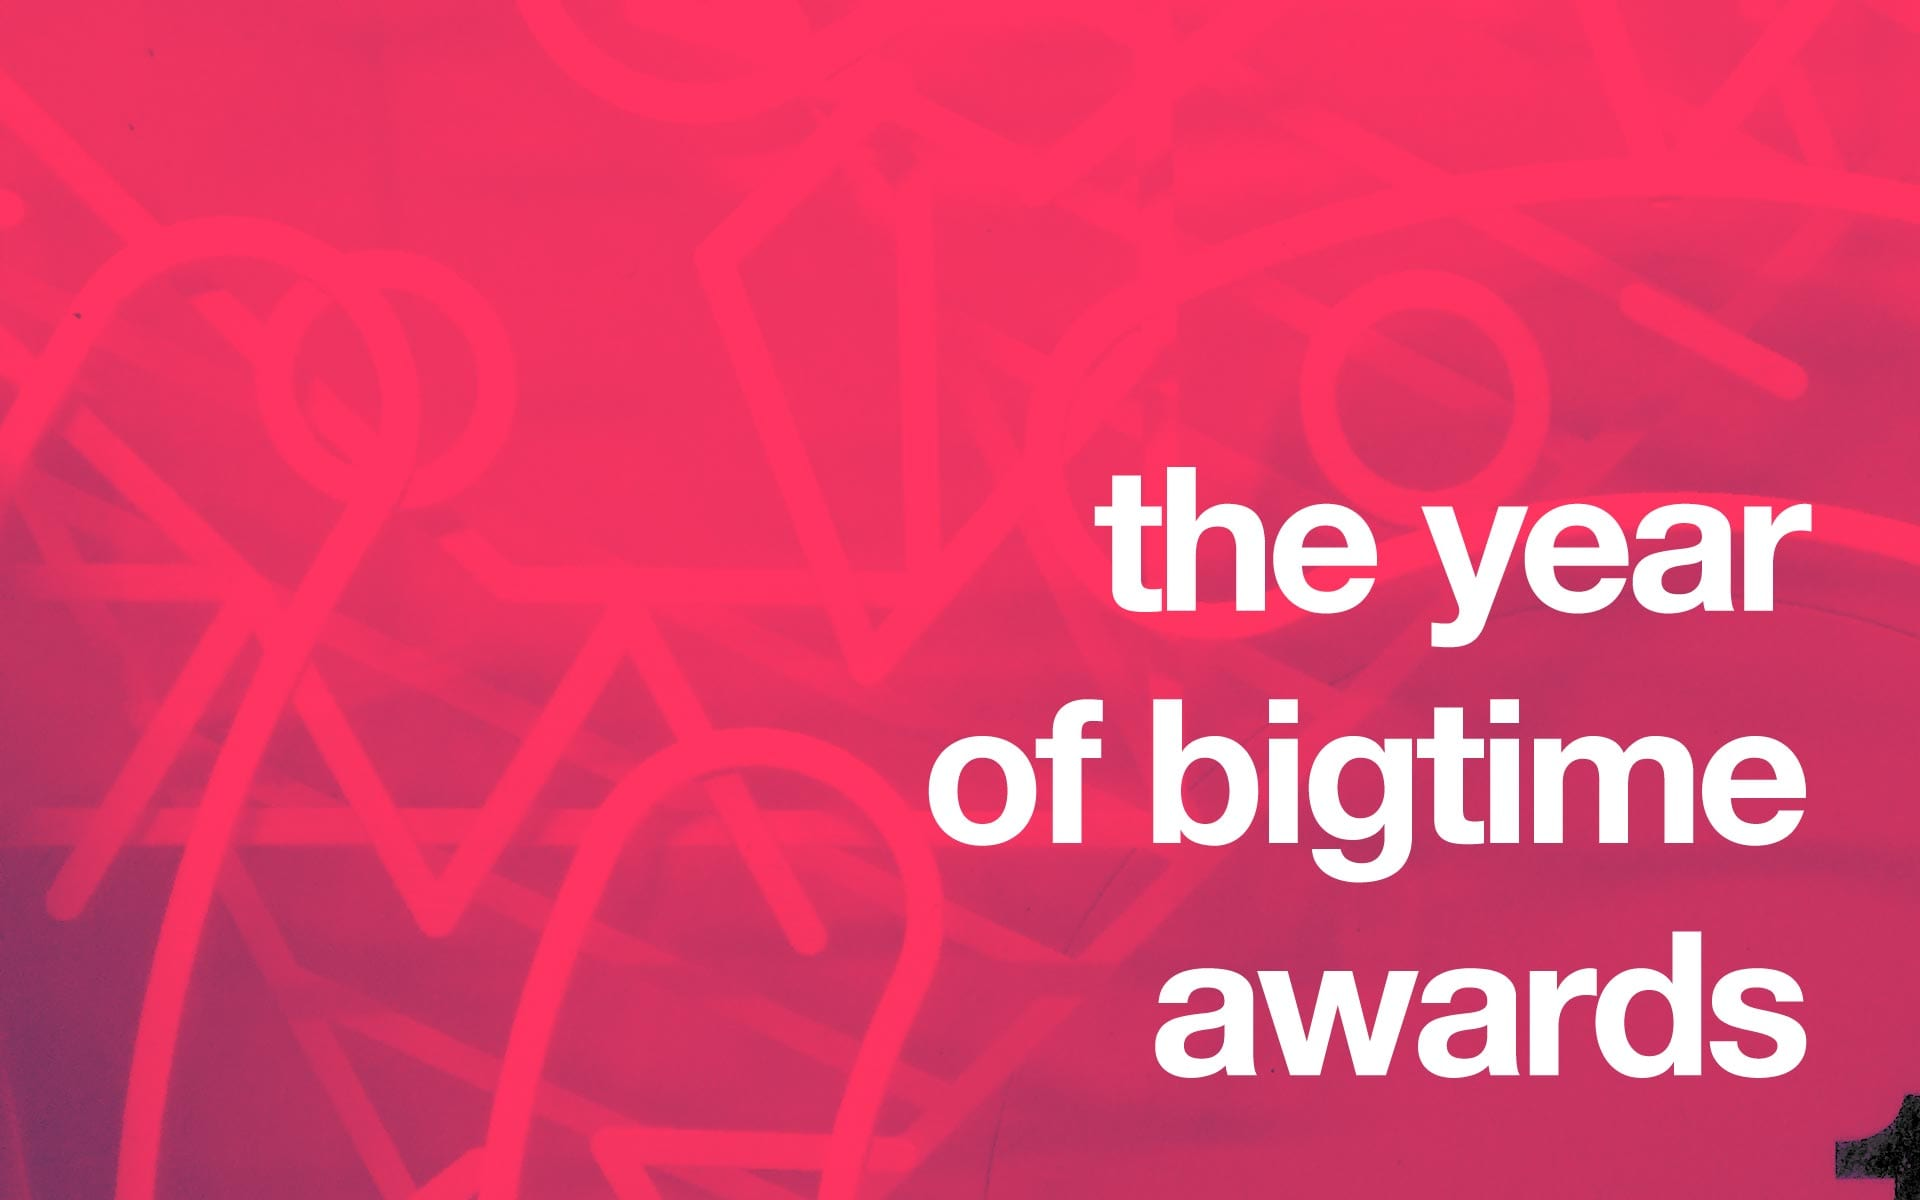 The Year of Bigtime Awards